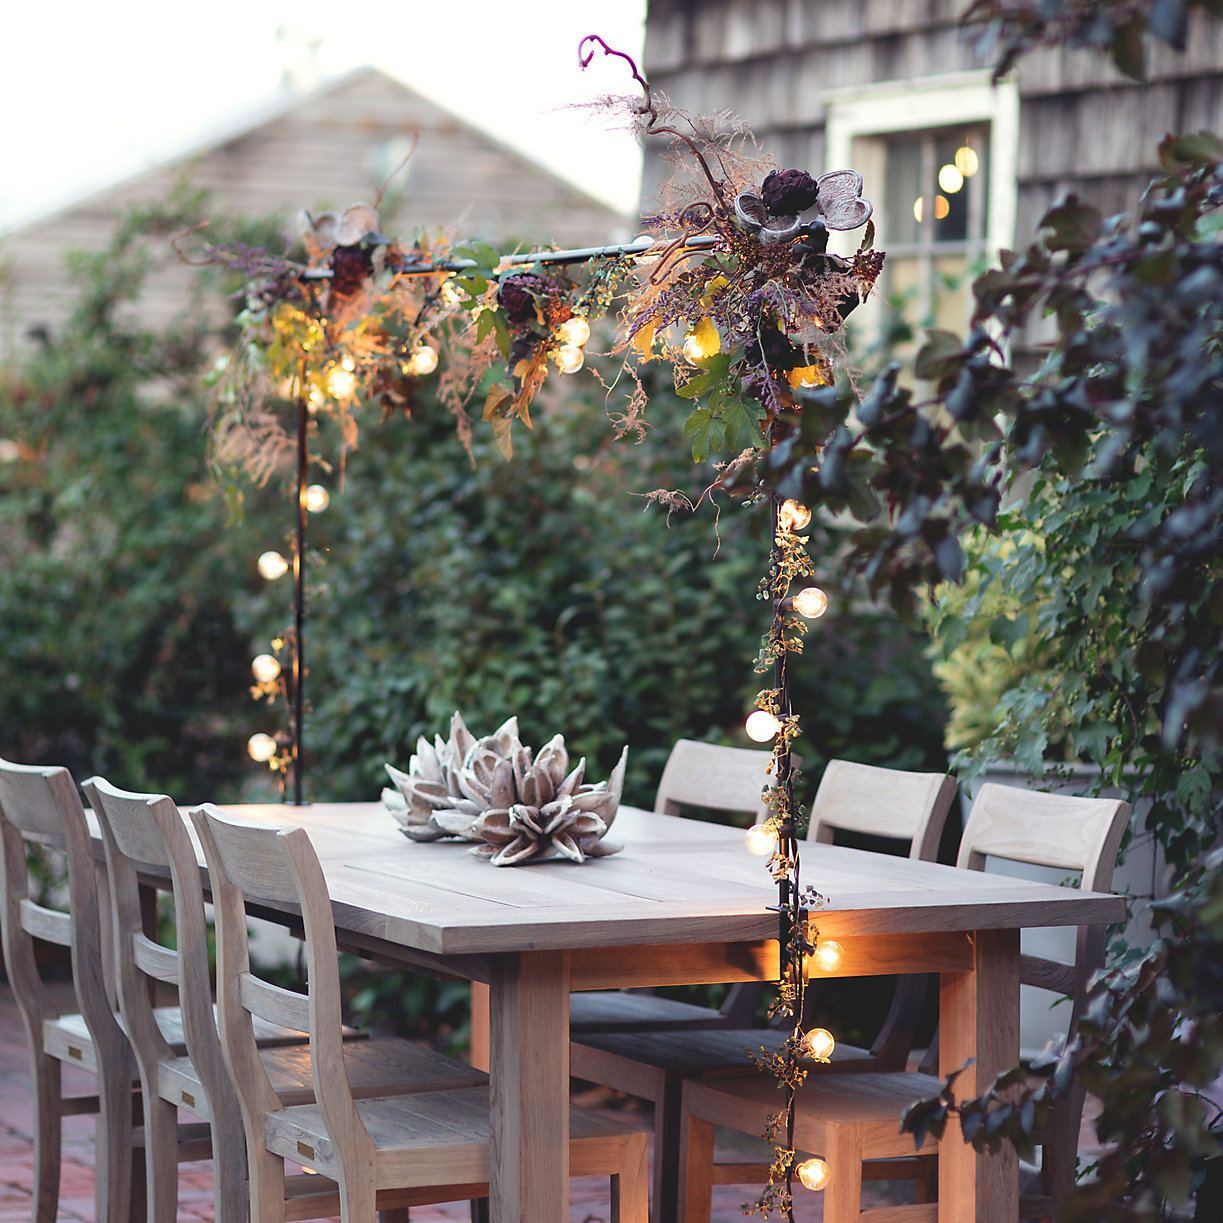 Holiday Decor: The Over-the-Table Rod from Terrain